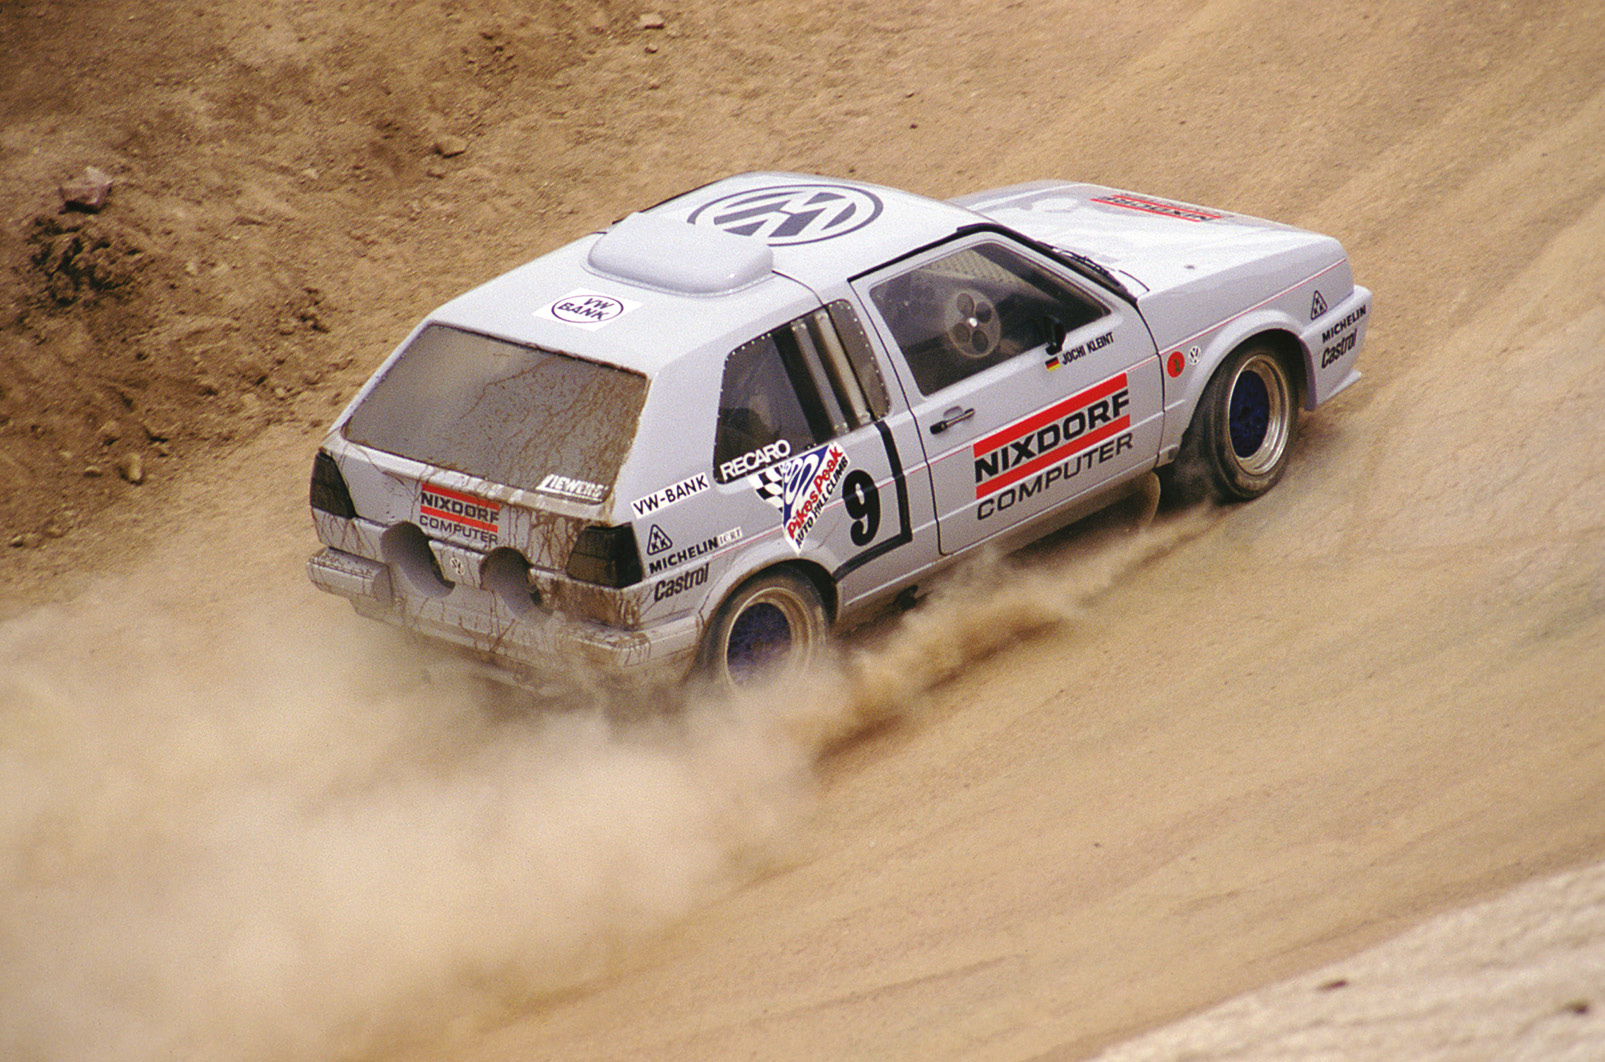 Pikes Peak attracts a plethora of bizarre specials, such as the mad twin-engined 640bhp VW Golf, driven by Jochi Klient.